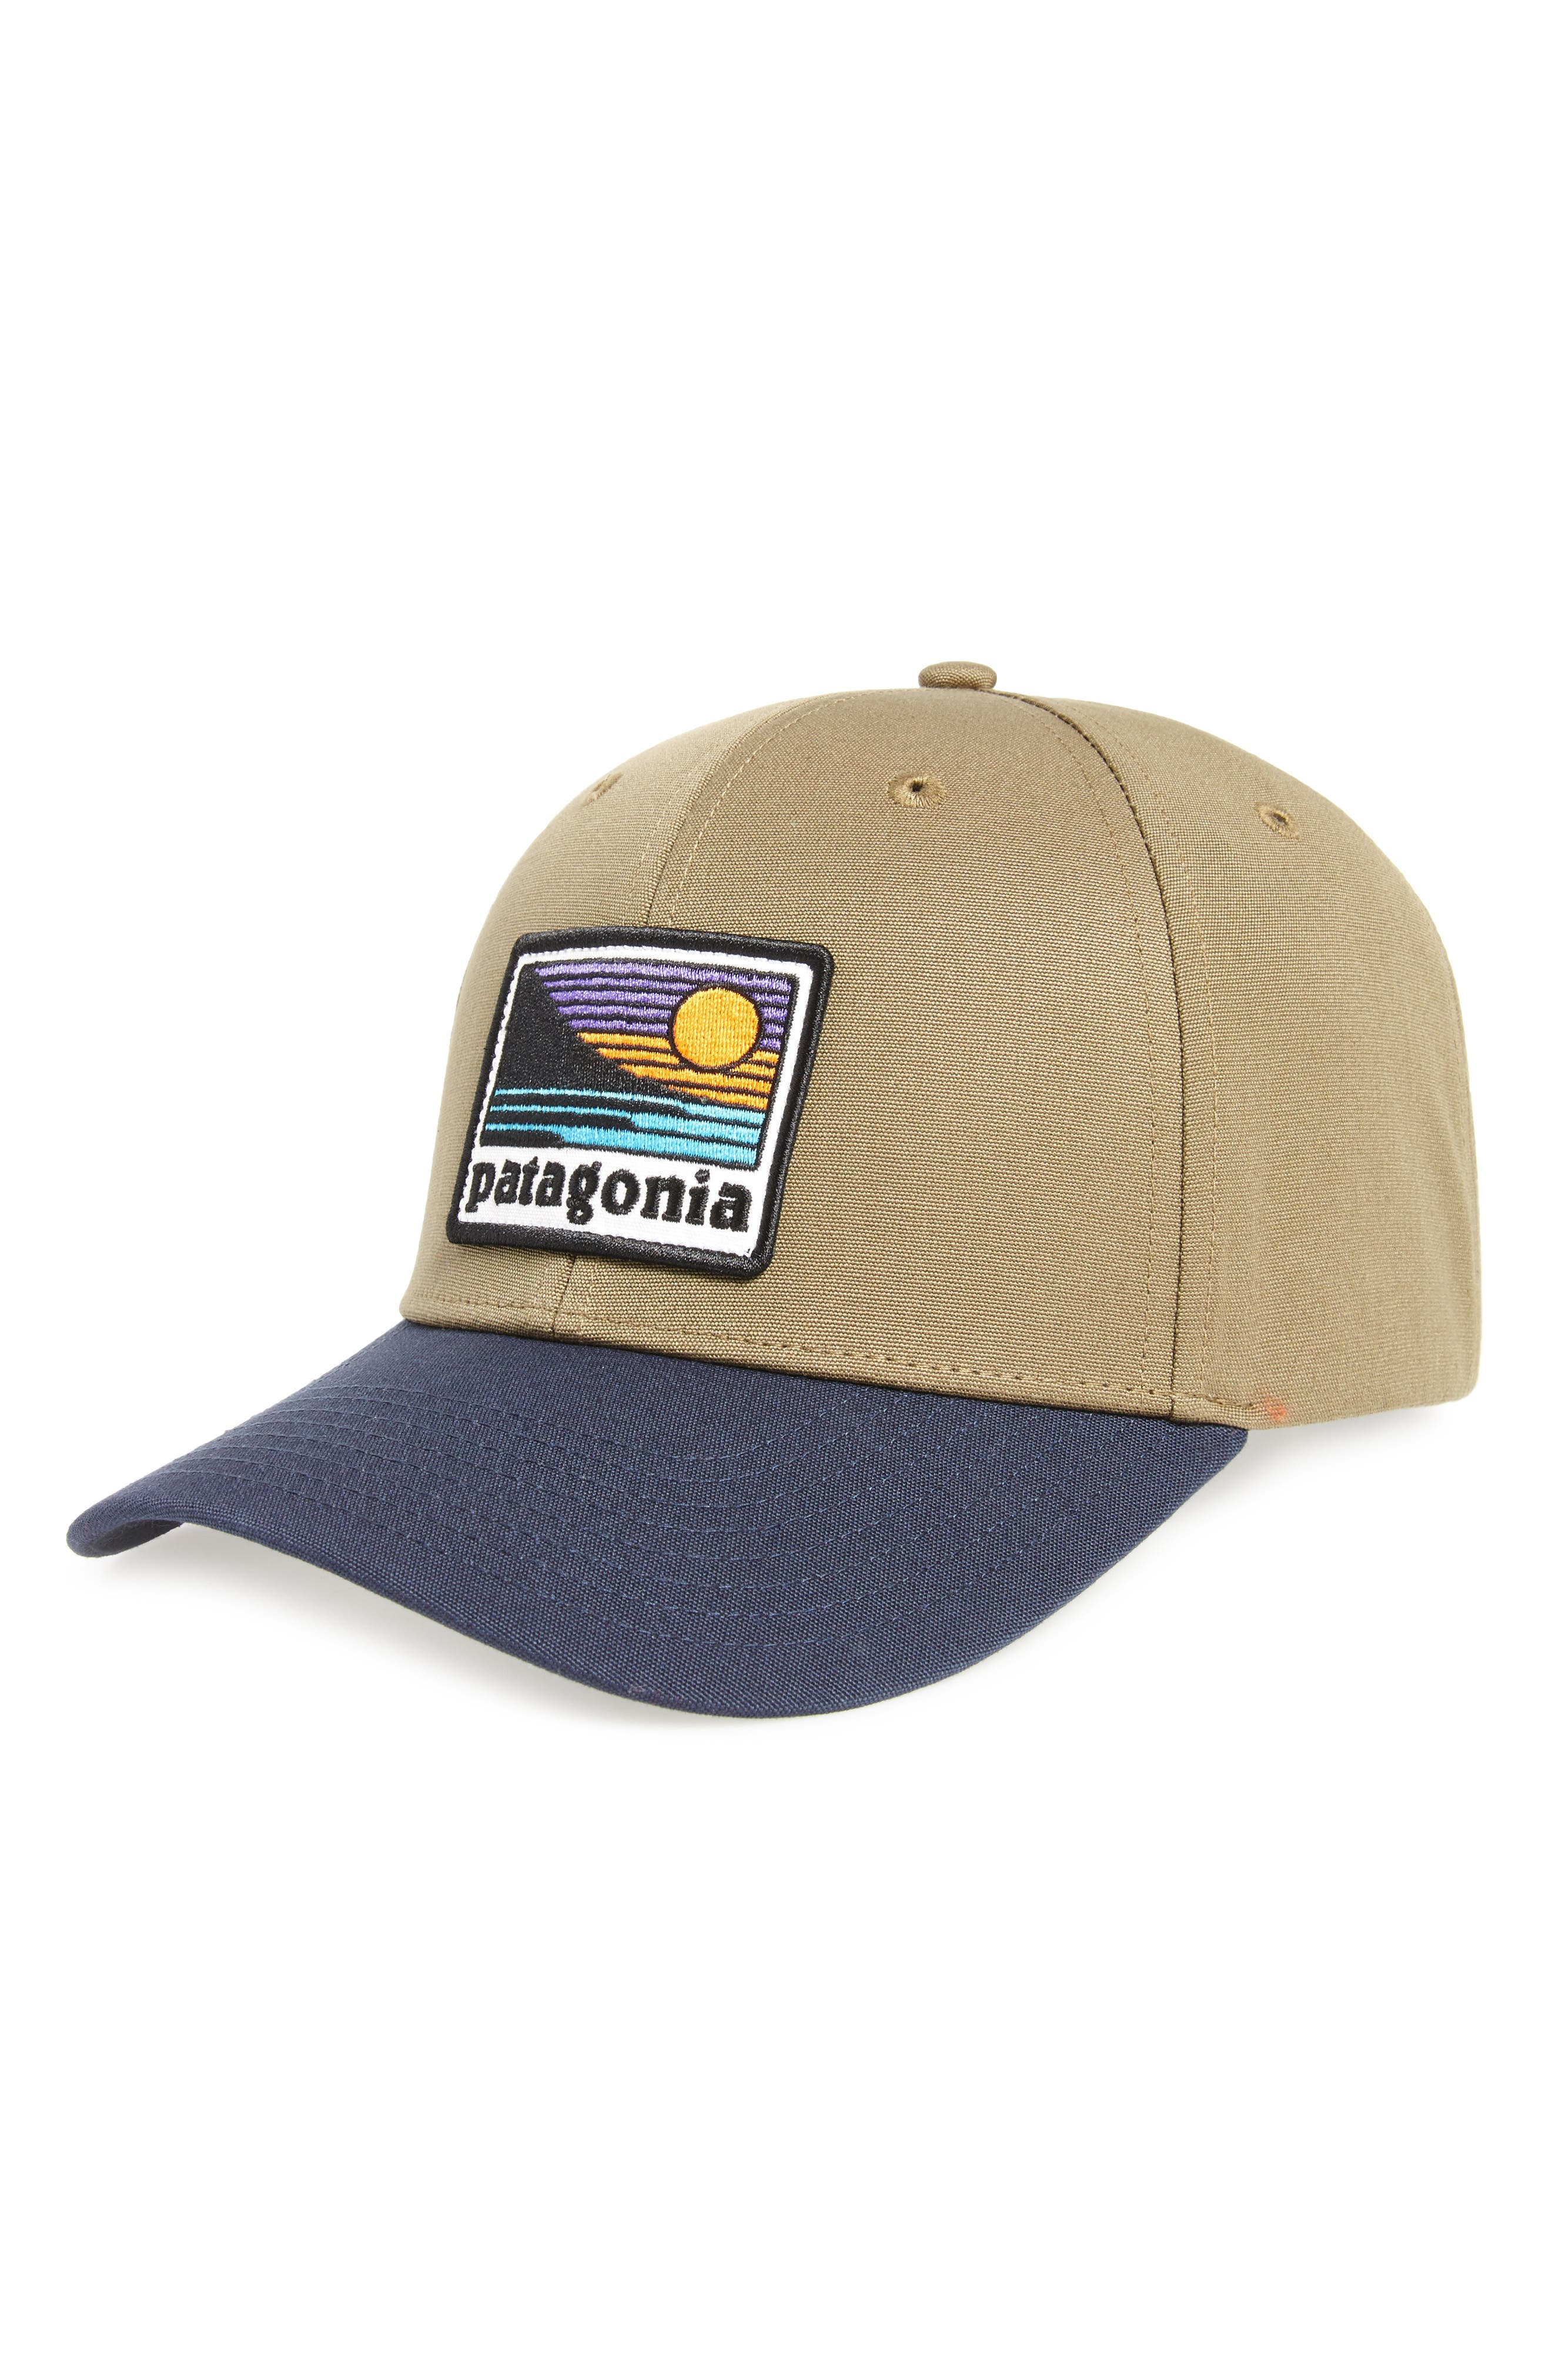 Main Image - Patagonia Up & Out Roger That Trucker Cap